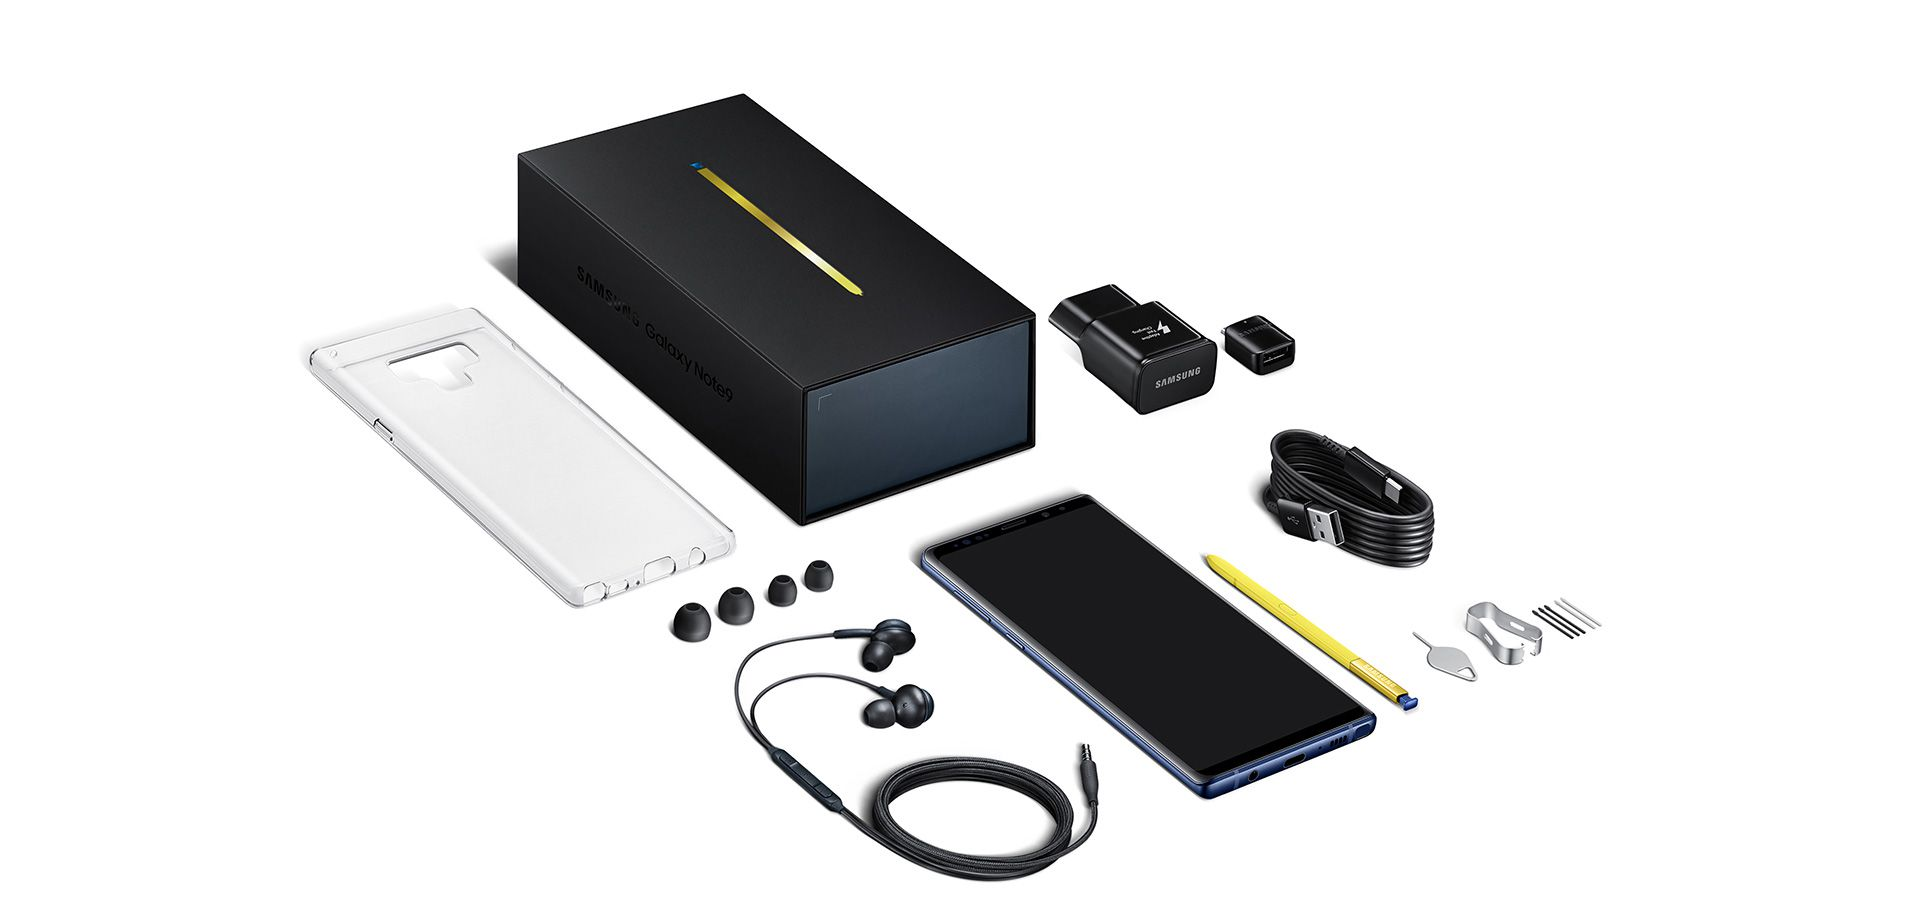 Image of in-box items: Device with S Pen, Tweezer and pen nibs, USB power adapter, Micro USB connector, USB connector (USB Type-C), USB cable, Ejection pin, Earphones, Case, Clear Cover. Included items may vary by country.